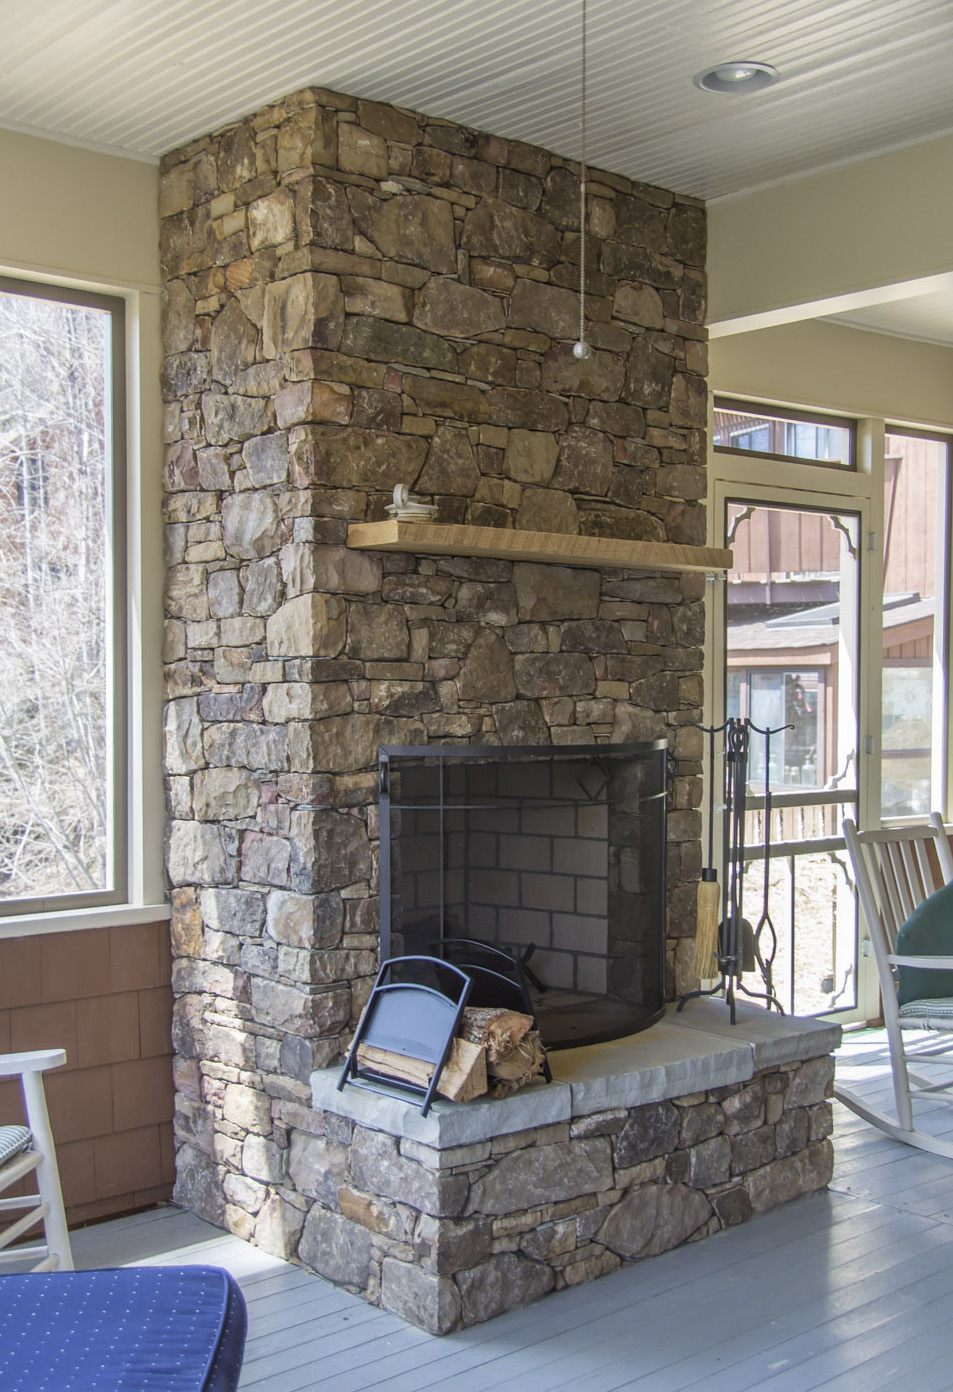 New stone fireplace in screened porch